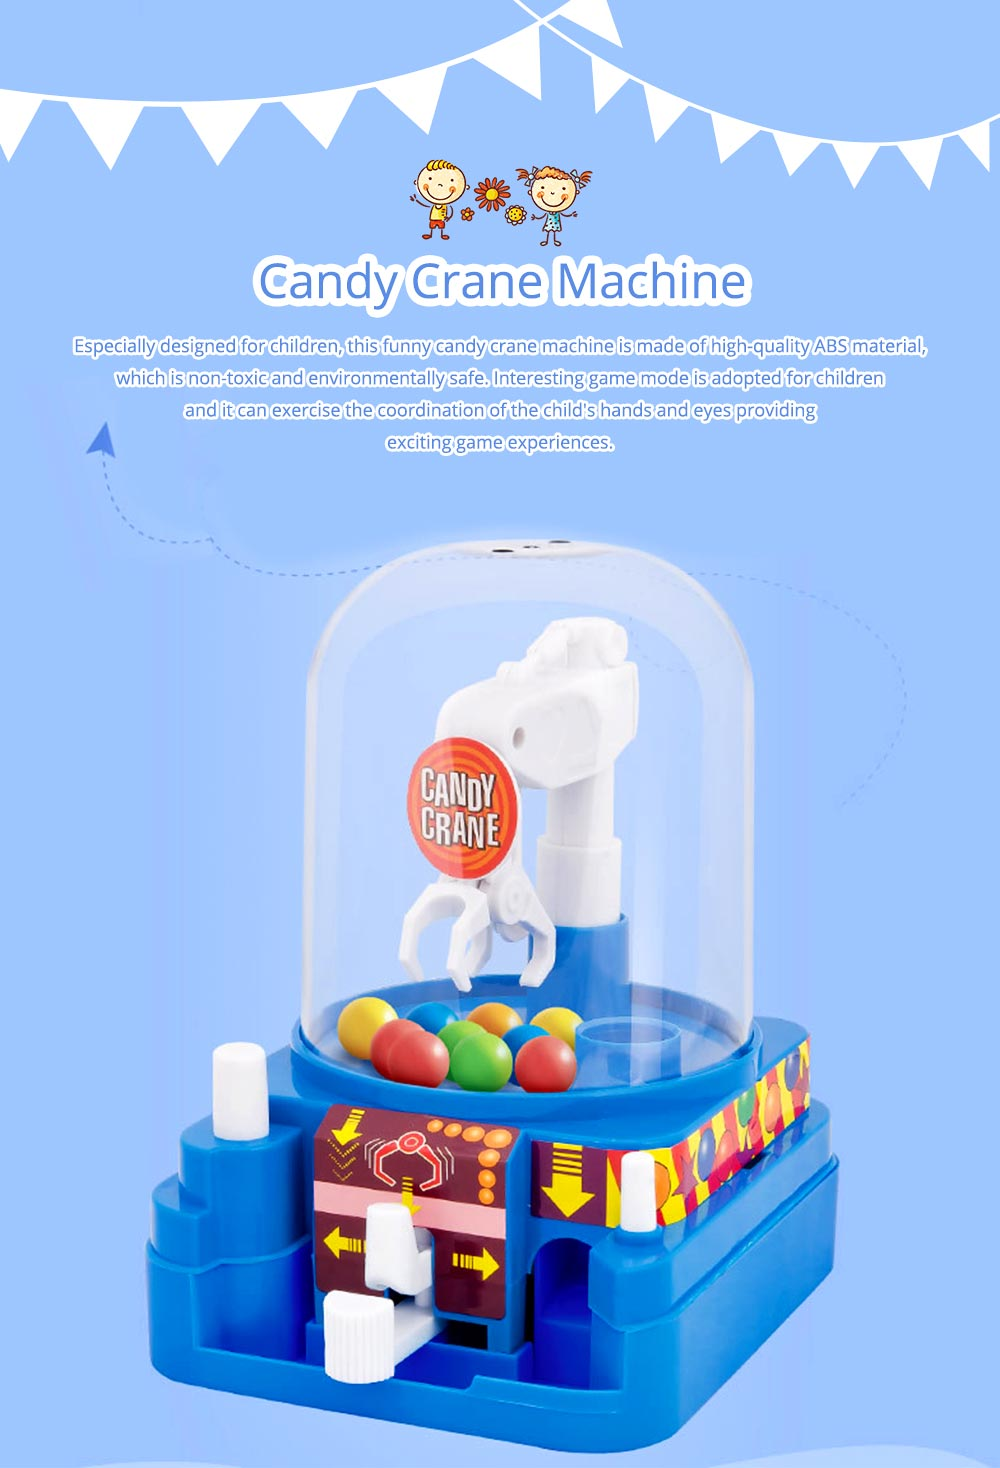 Creative Candy Clamping Machine Toy with Flexible Articulated Arm, Funny Carton Candy Sugar Crane Manual Machine for Children 0